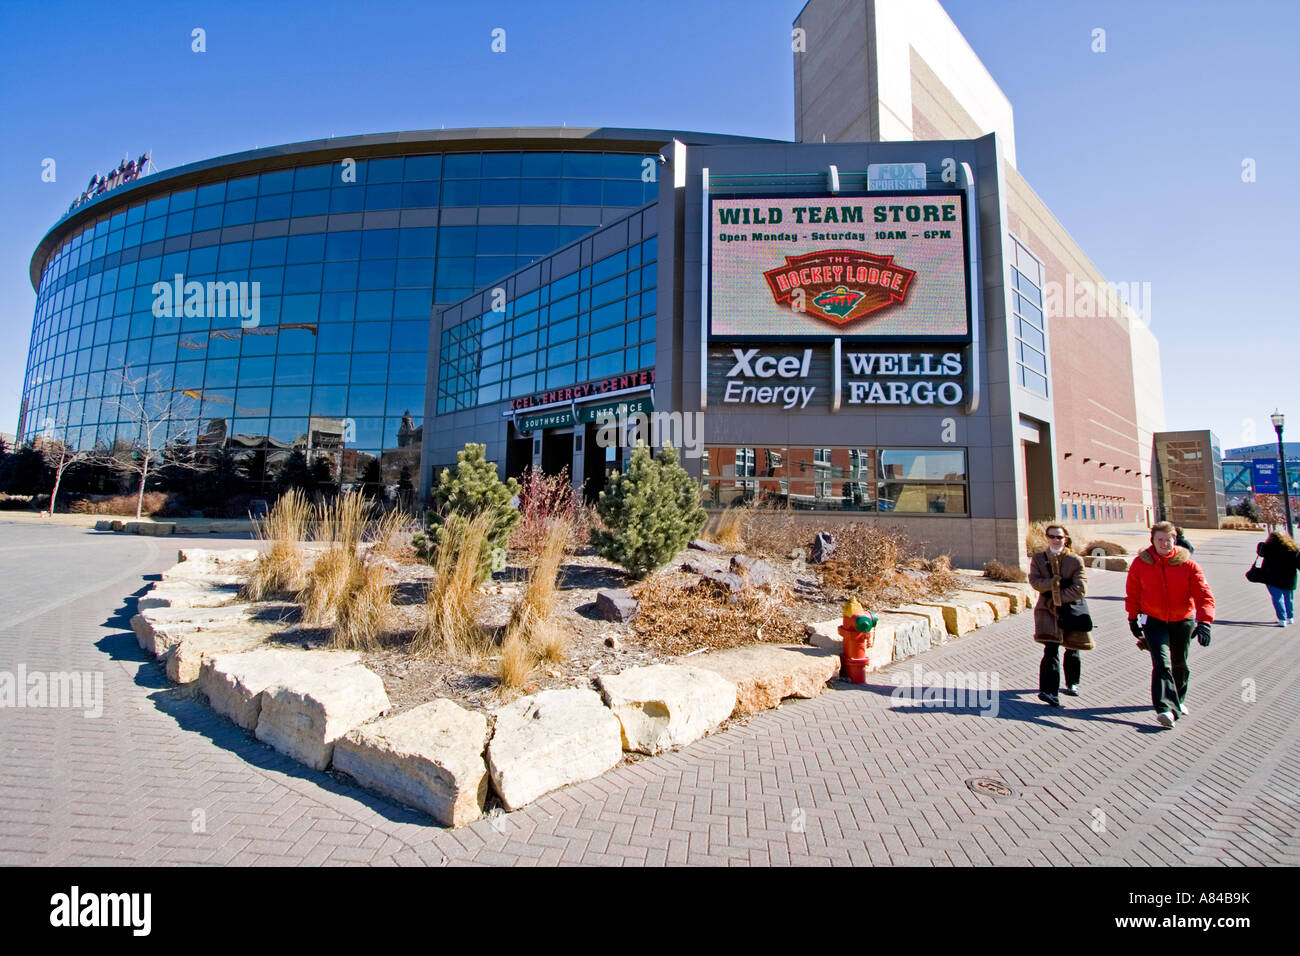 Xcel Energy Center Stock Photos & Xcel Energy Center Stock Images ...